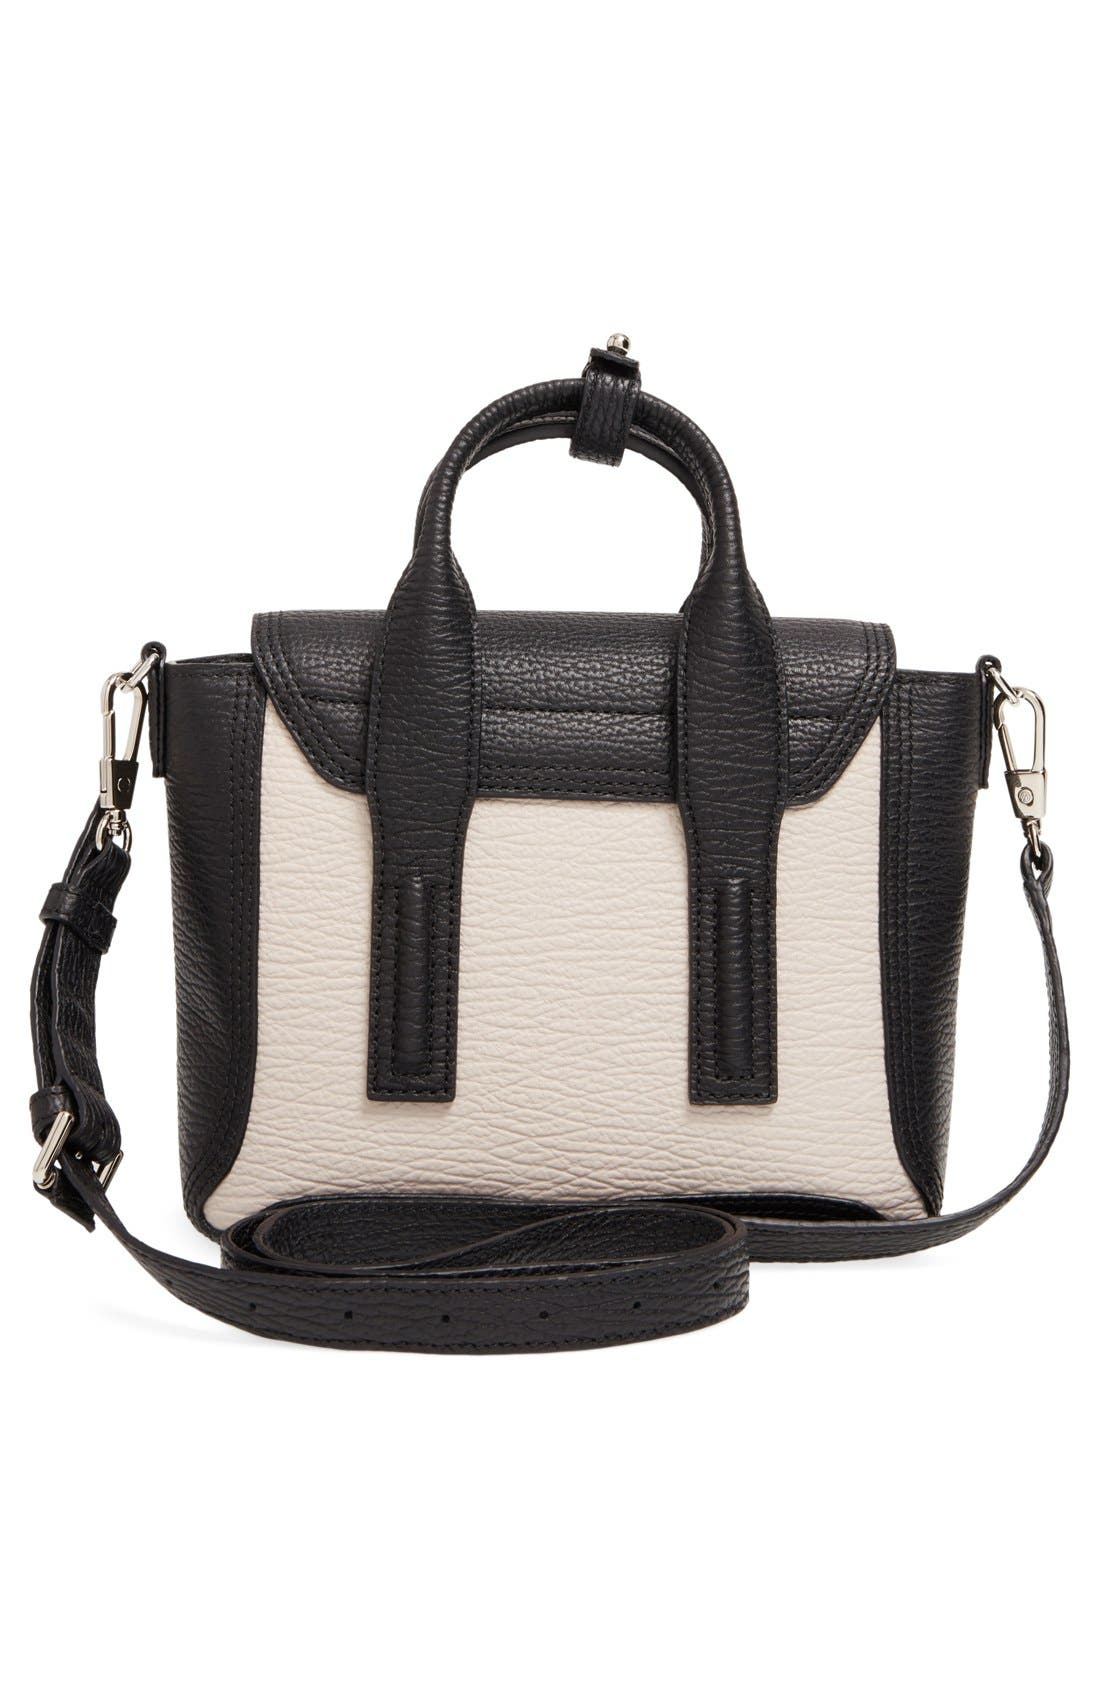 Alternate Image 3  - 3.1 Phillip Lim 'Mini Pashli' Colorblock Satchel